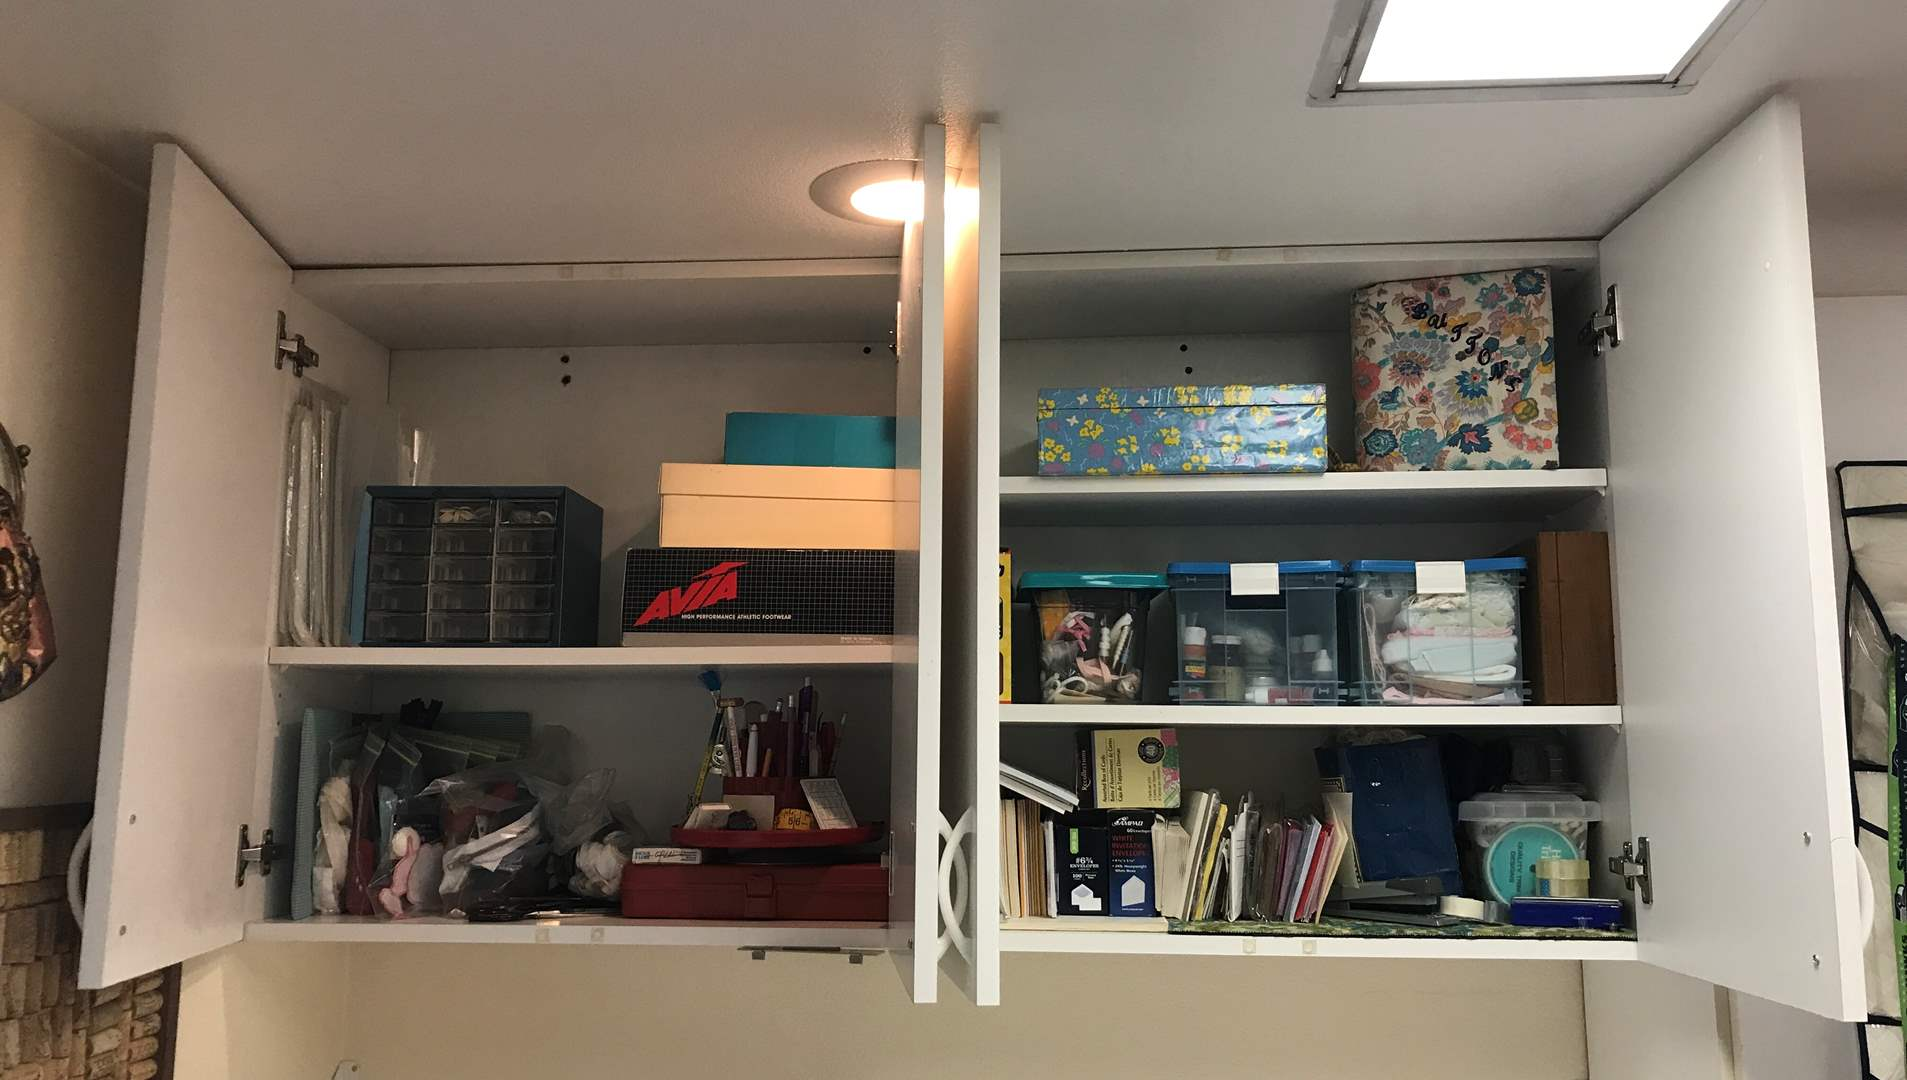 Lot # 155 - Shelves Full of Zippers, Buttons, Envelopes, Fabric Clippings, Thread, Finishing's & More (main image)